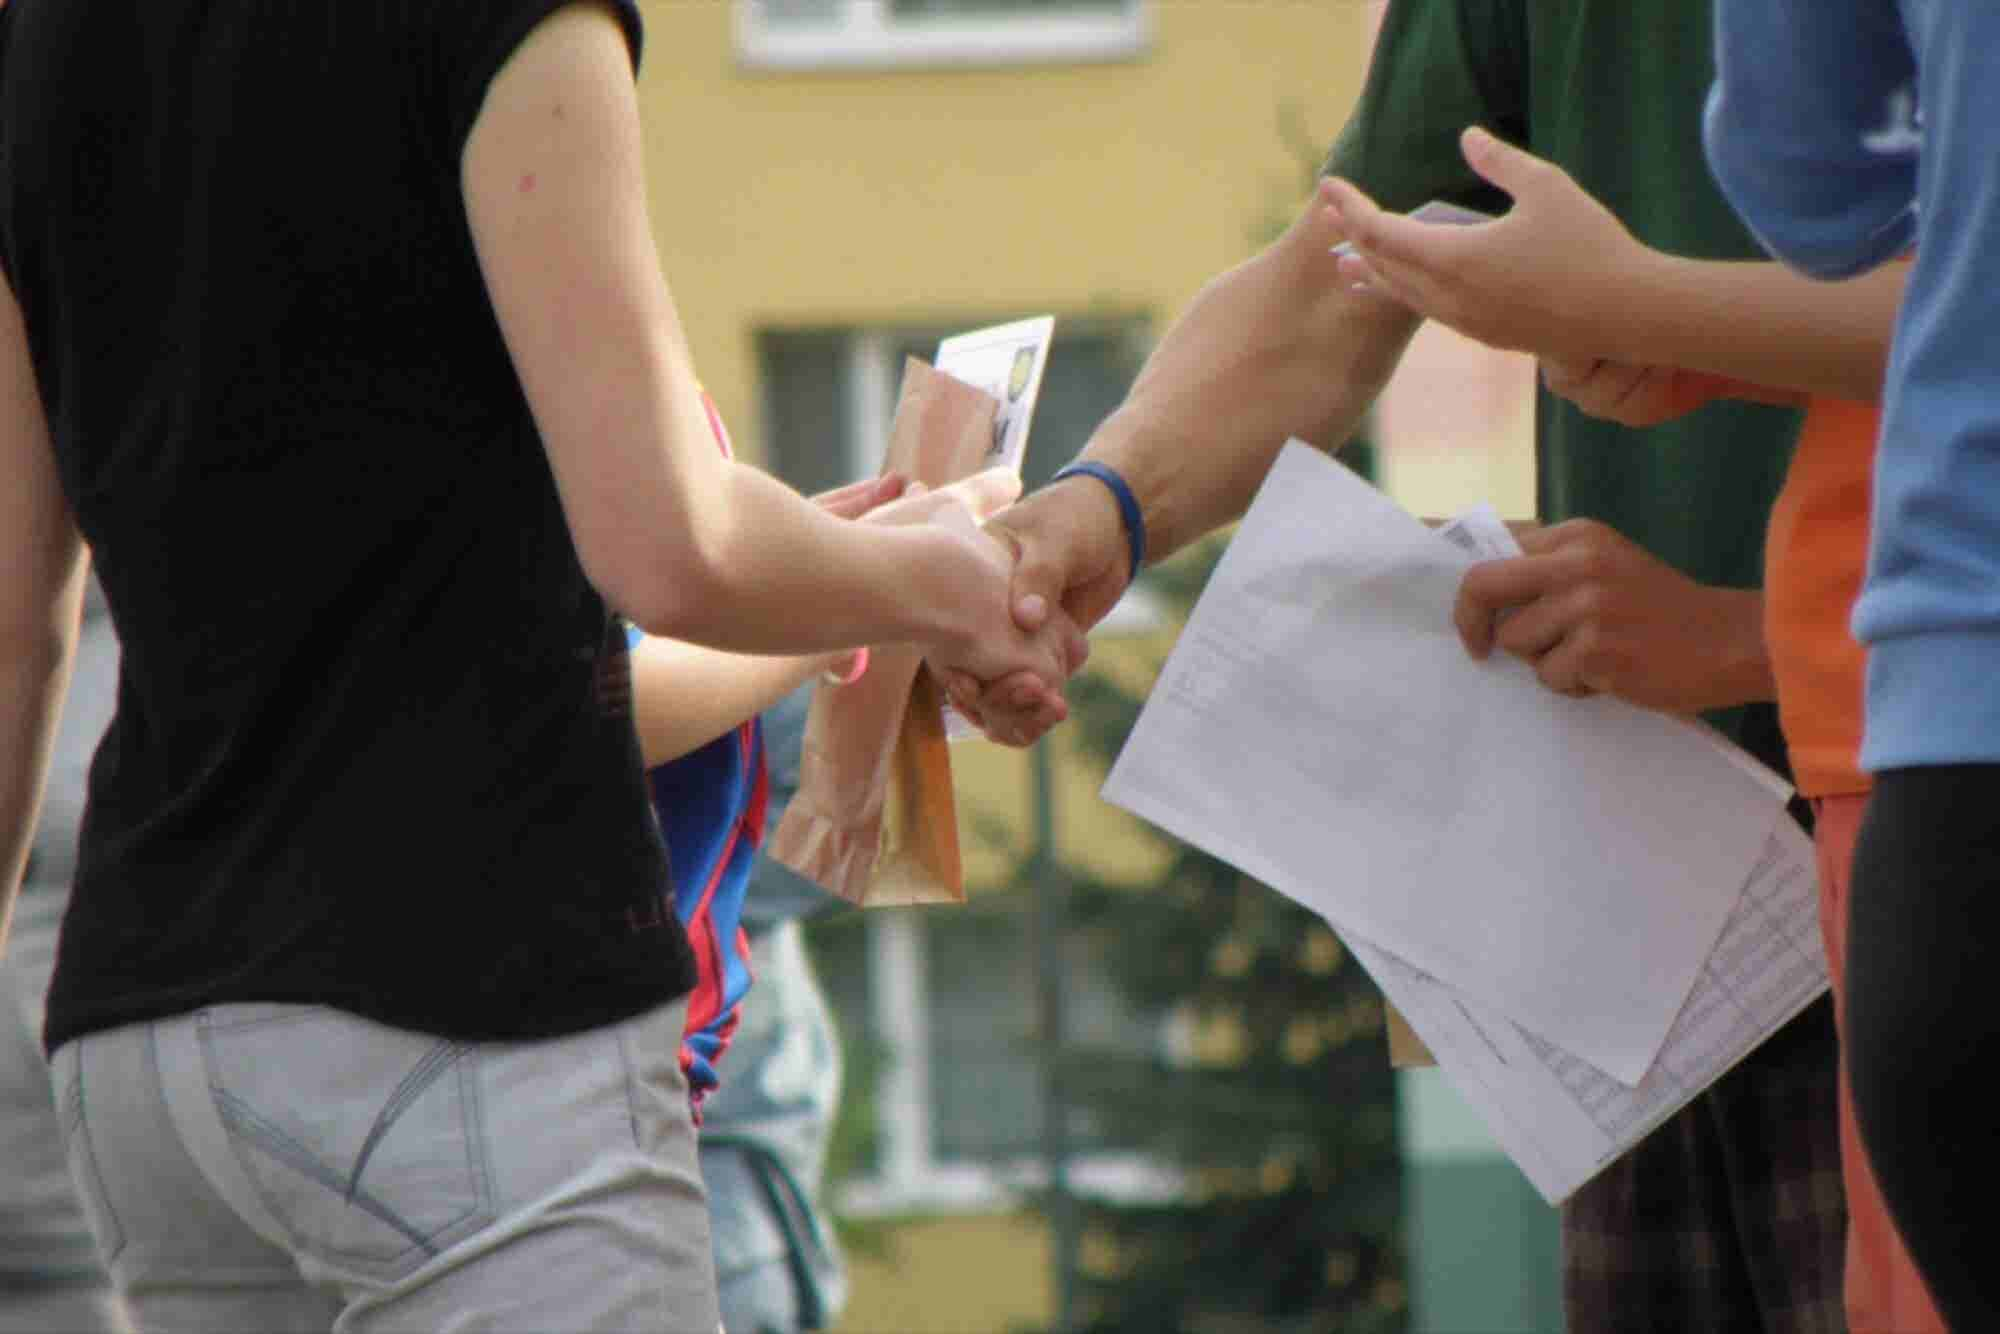 8 Handshakes That Make Unforgettably Bad First Impressions